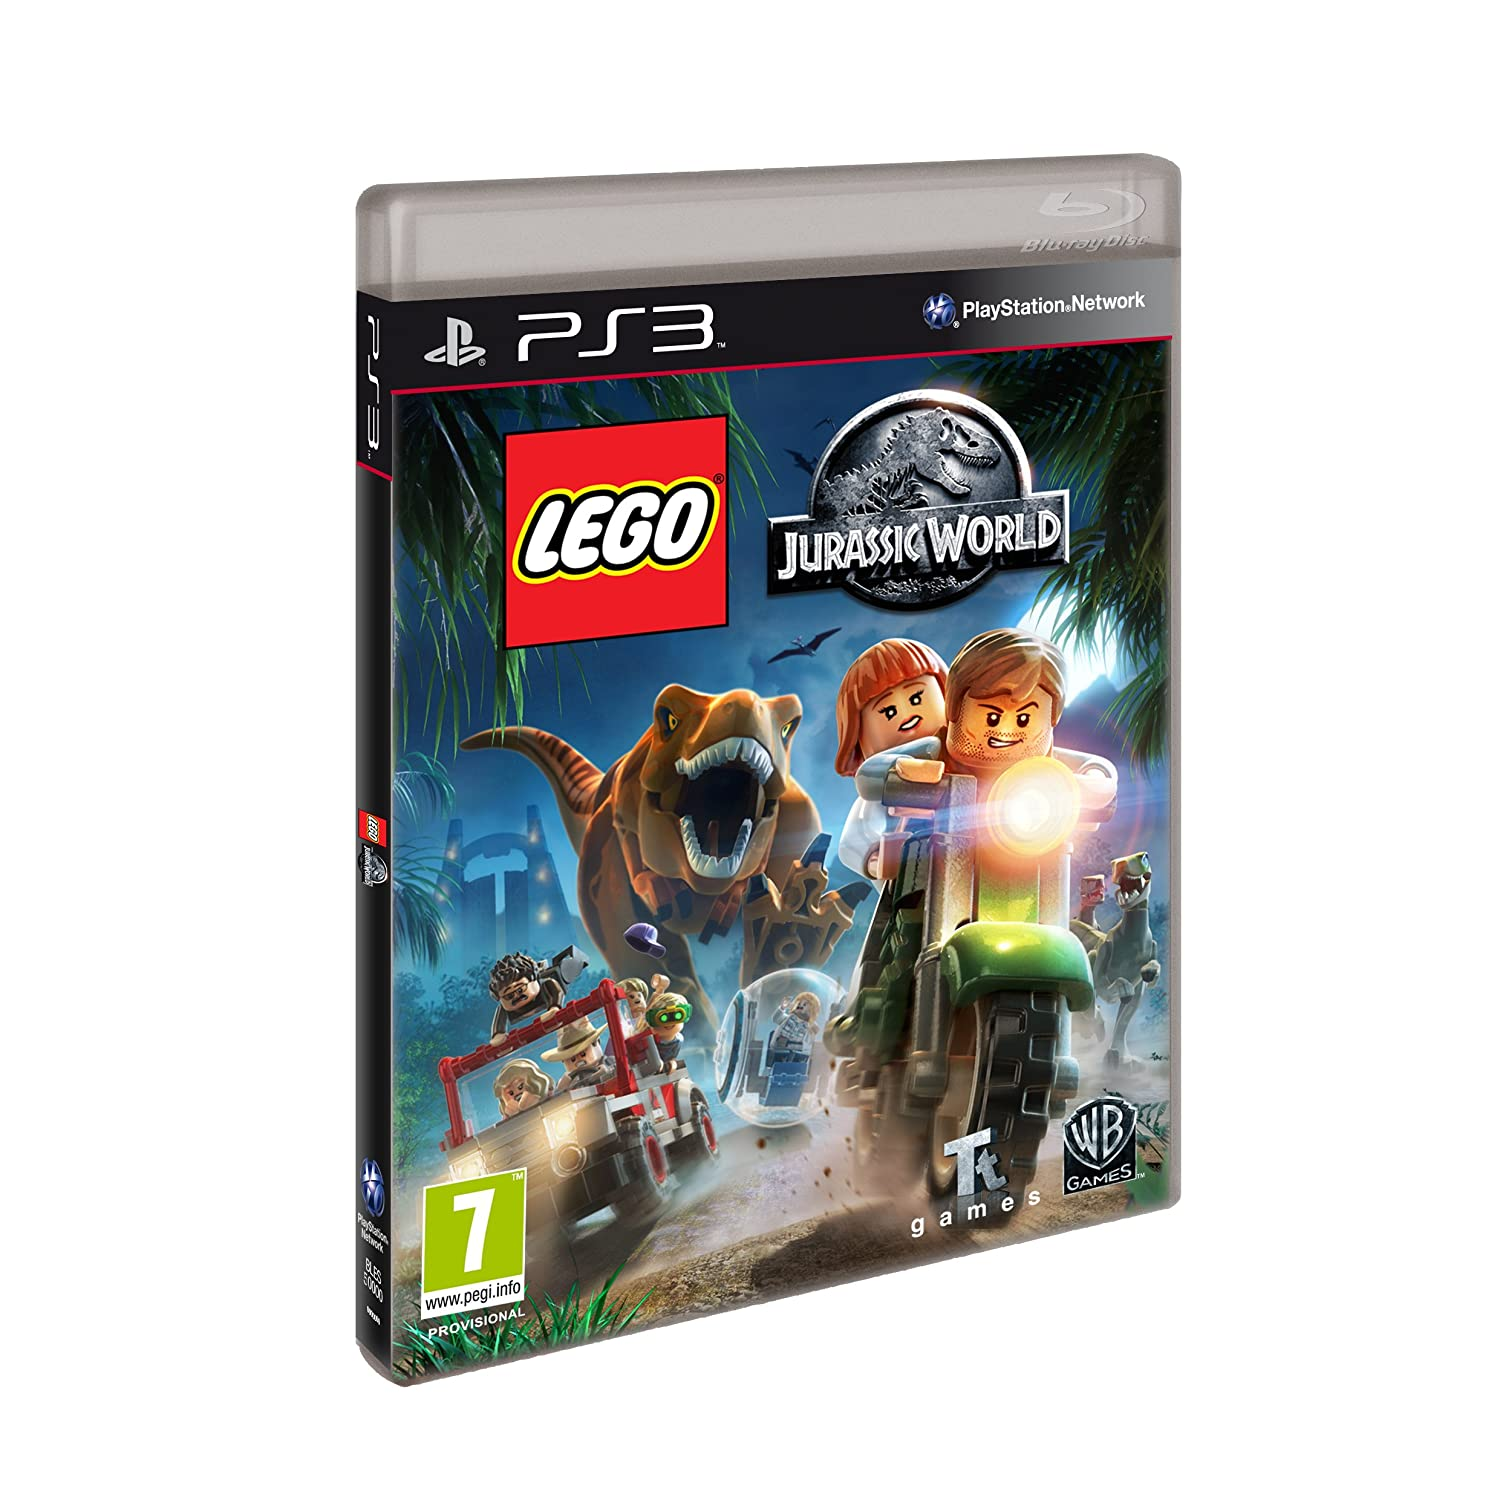 Fun Games For Ps3 : Lego jurassic world sony ps family kids fun game pal